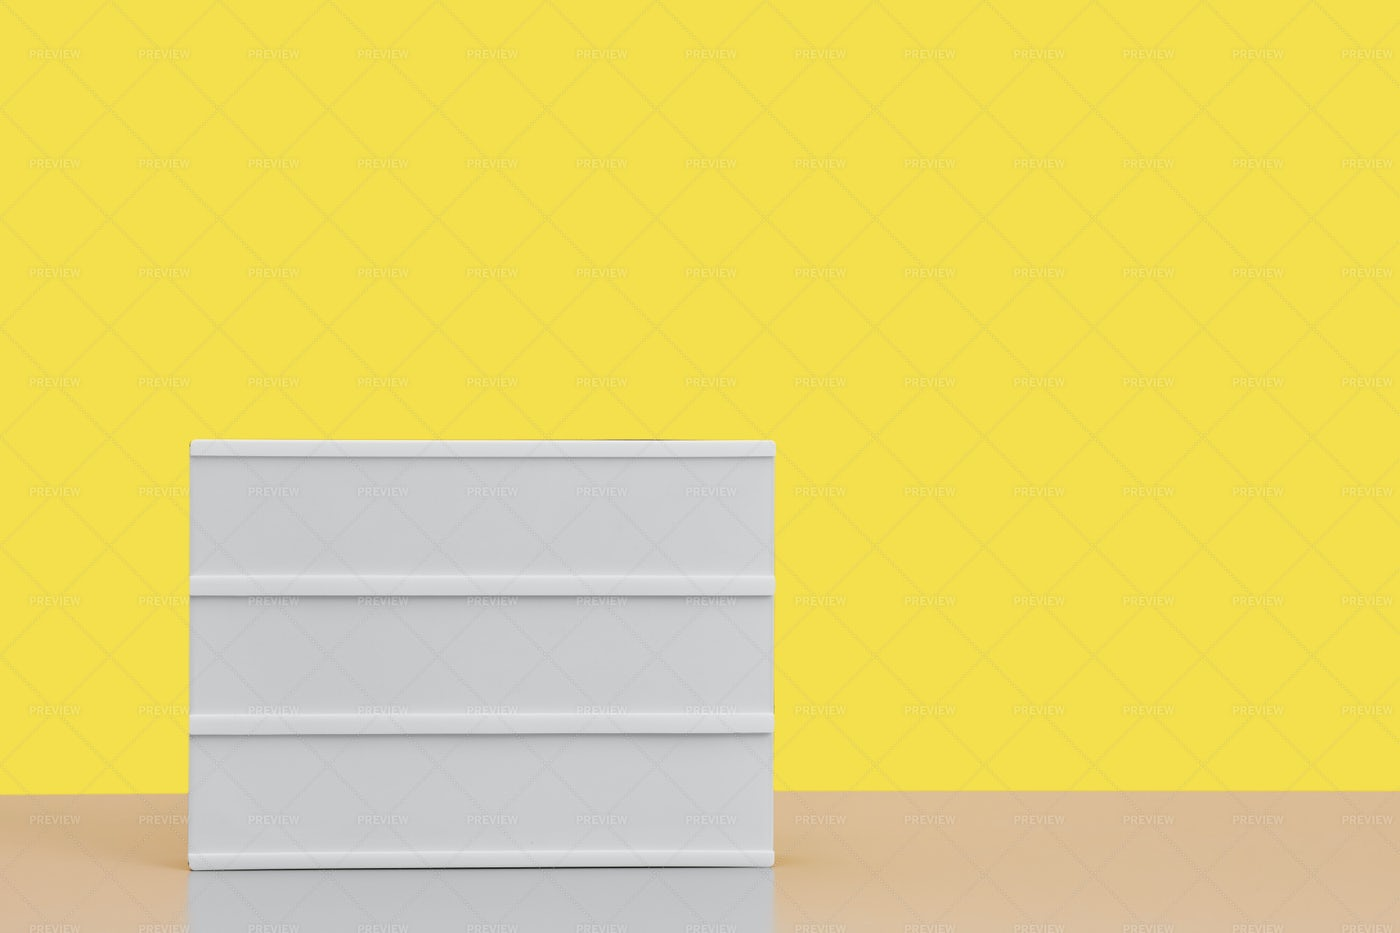 Blank Sign Background Against Yellow: Stock Photos